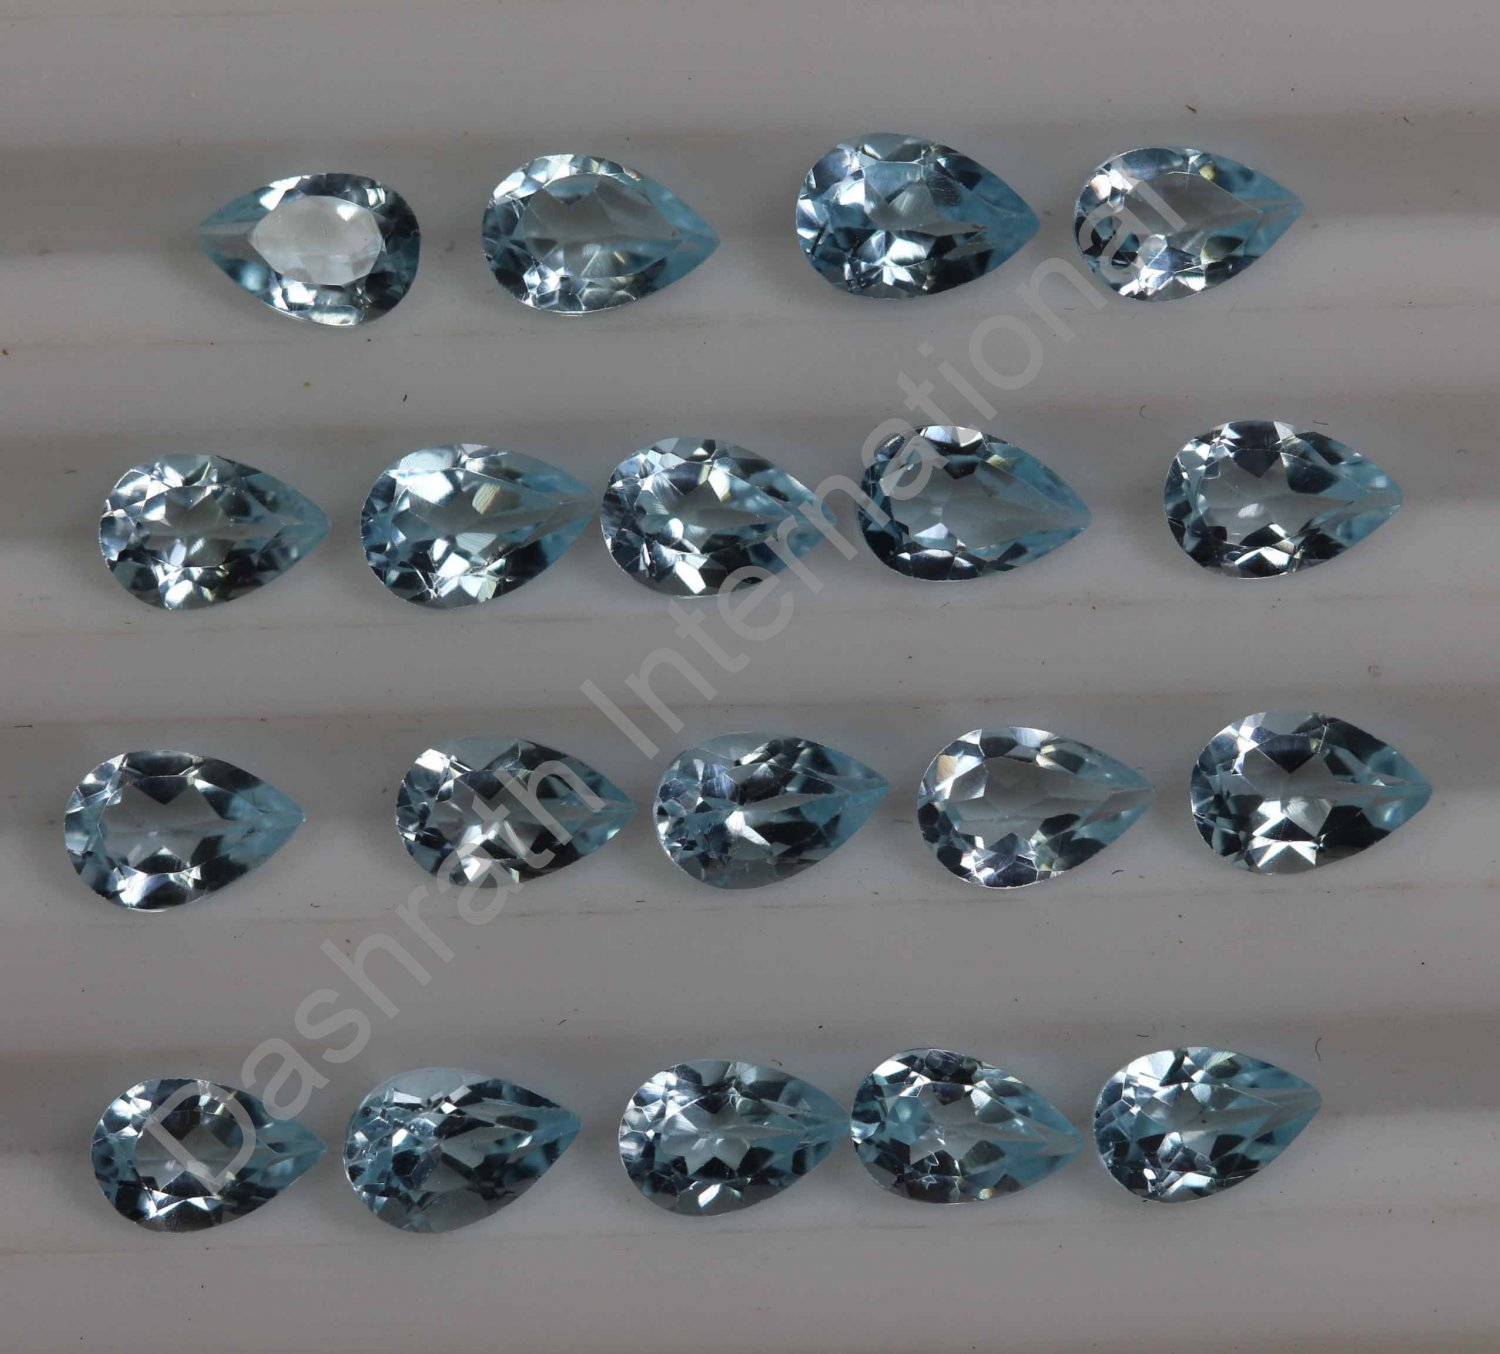 5x3mm  Natural Sky Blue Topaz Faceted Cut Pear 100 Pieces Lot Top Quality Loose Gemstone